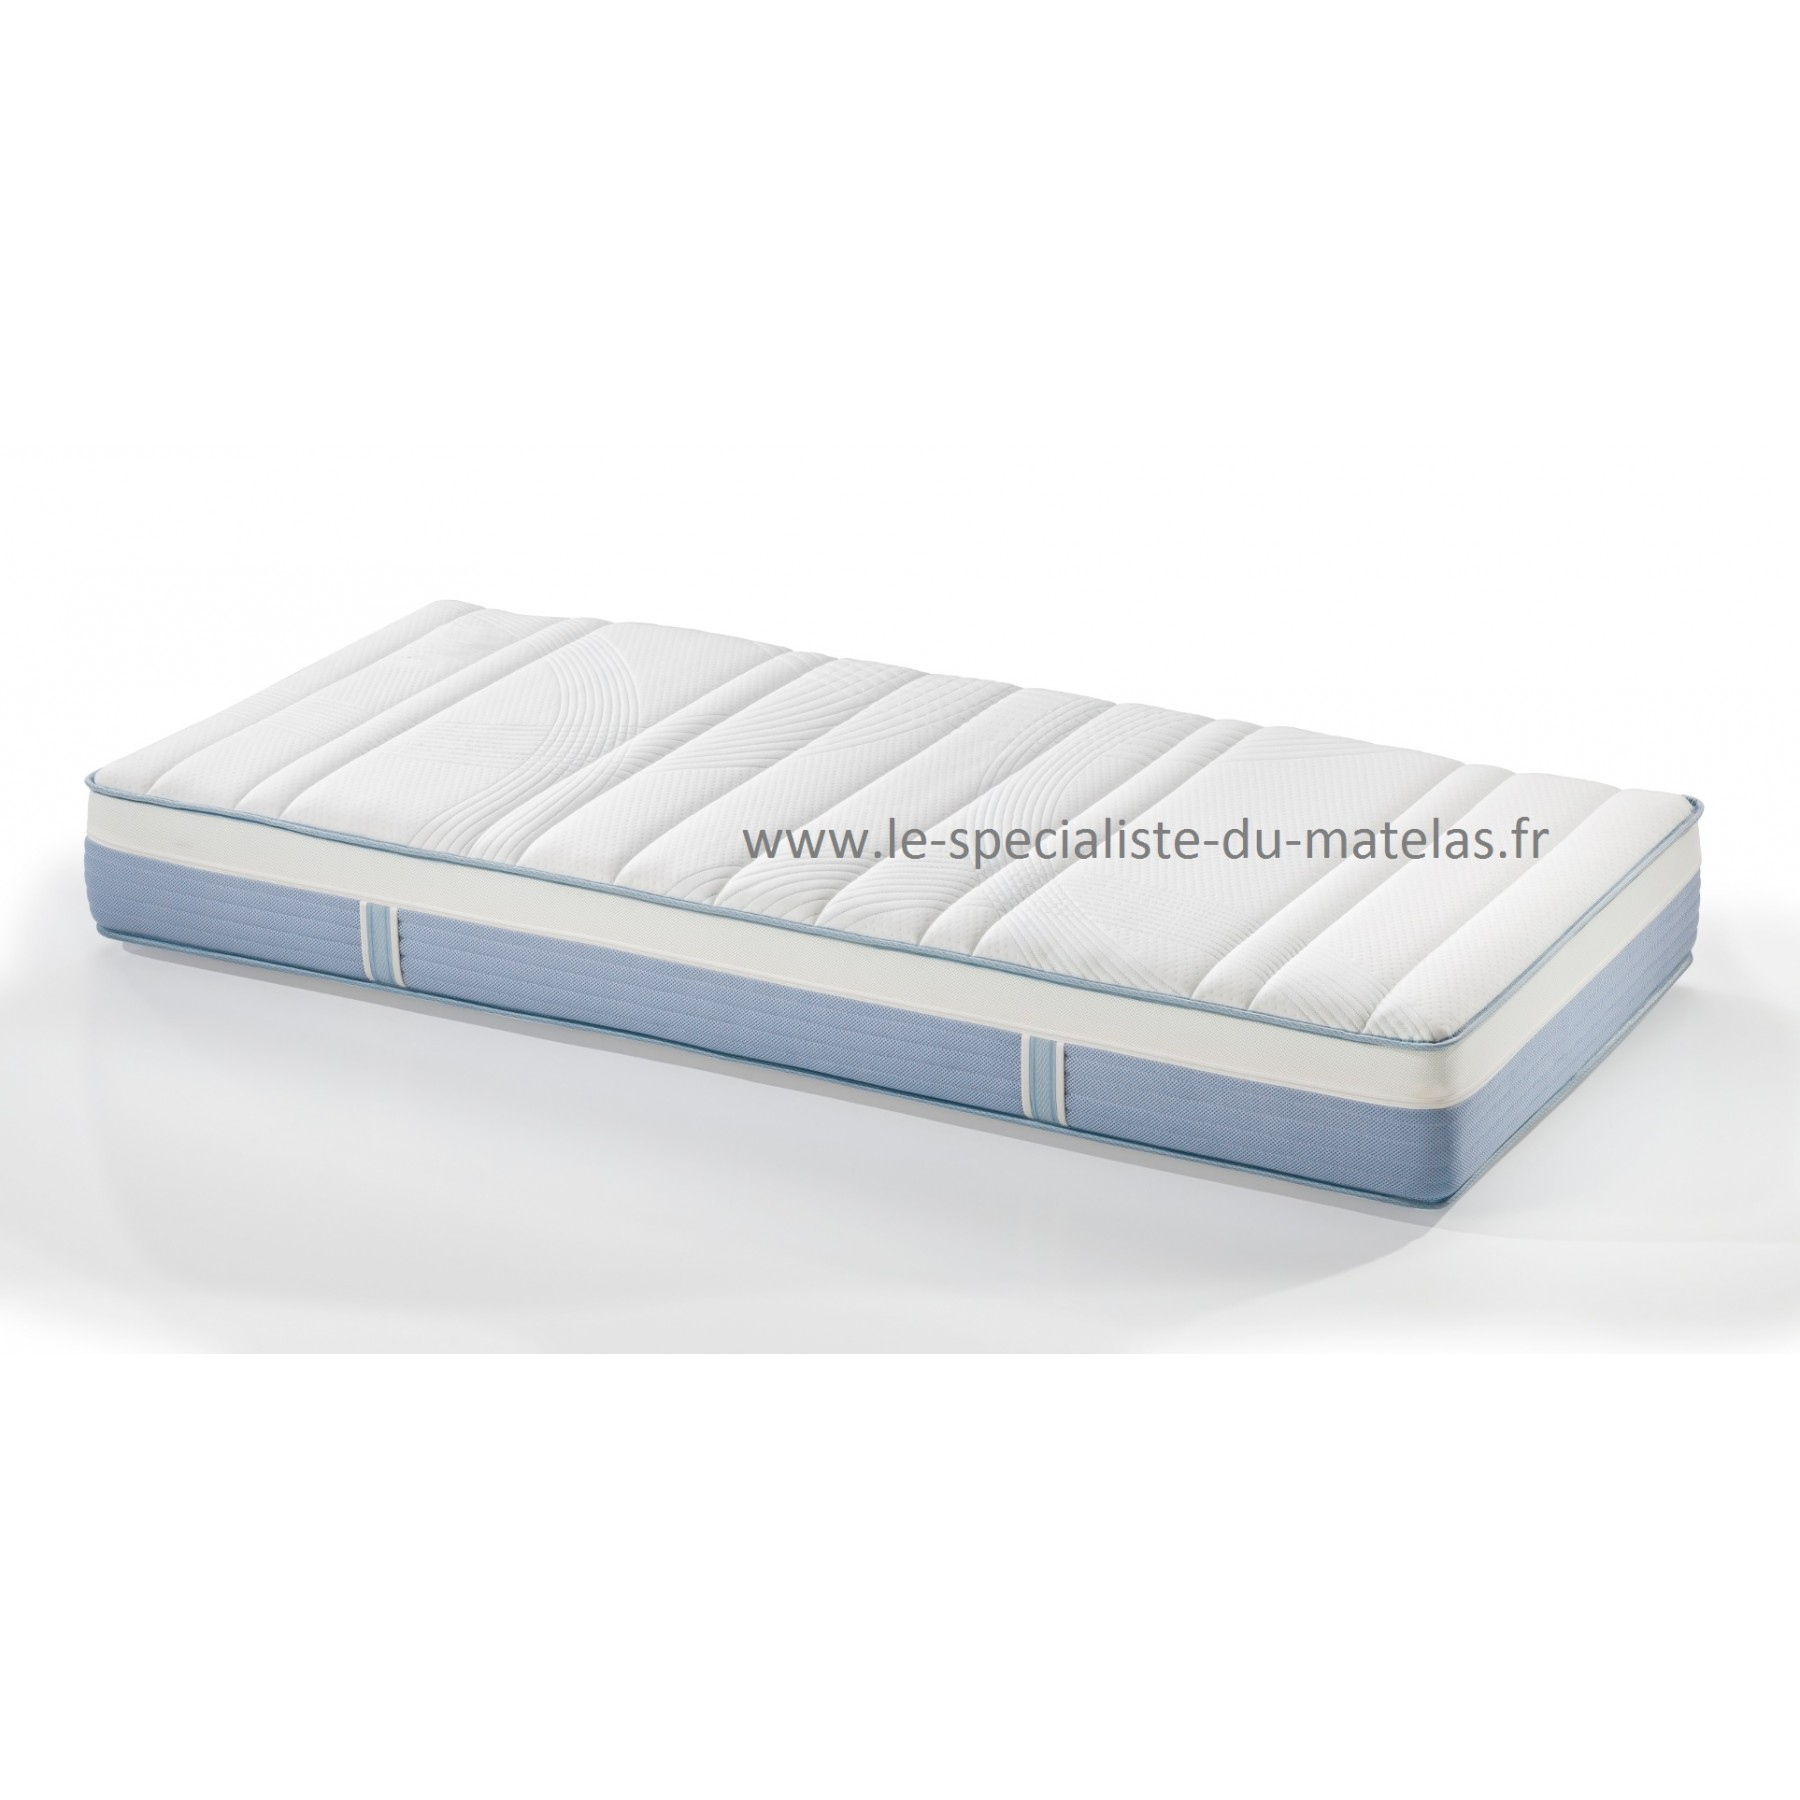 matelas 80x200 ressorts ensachs fabulous matelas ep da plaza cm ressorts ensach s with matelas. Black Bedroom Furniture Sets. Home Design Ideas